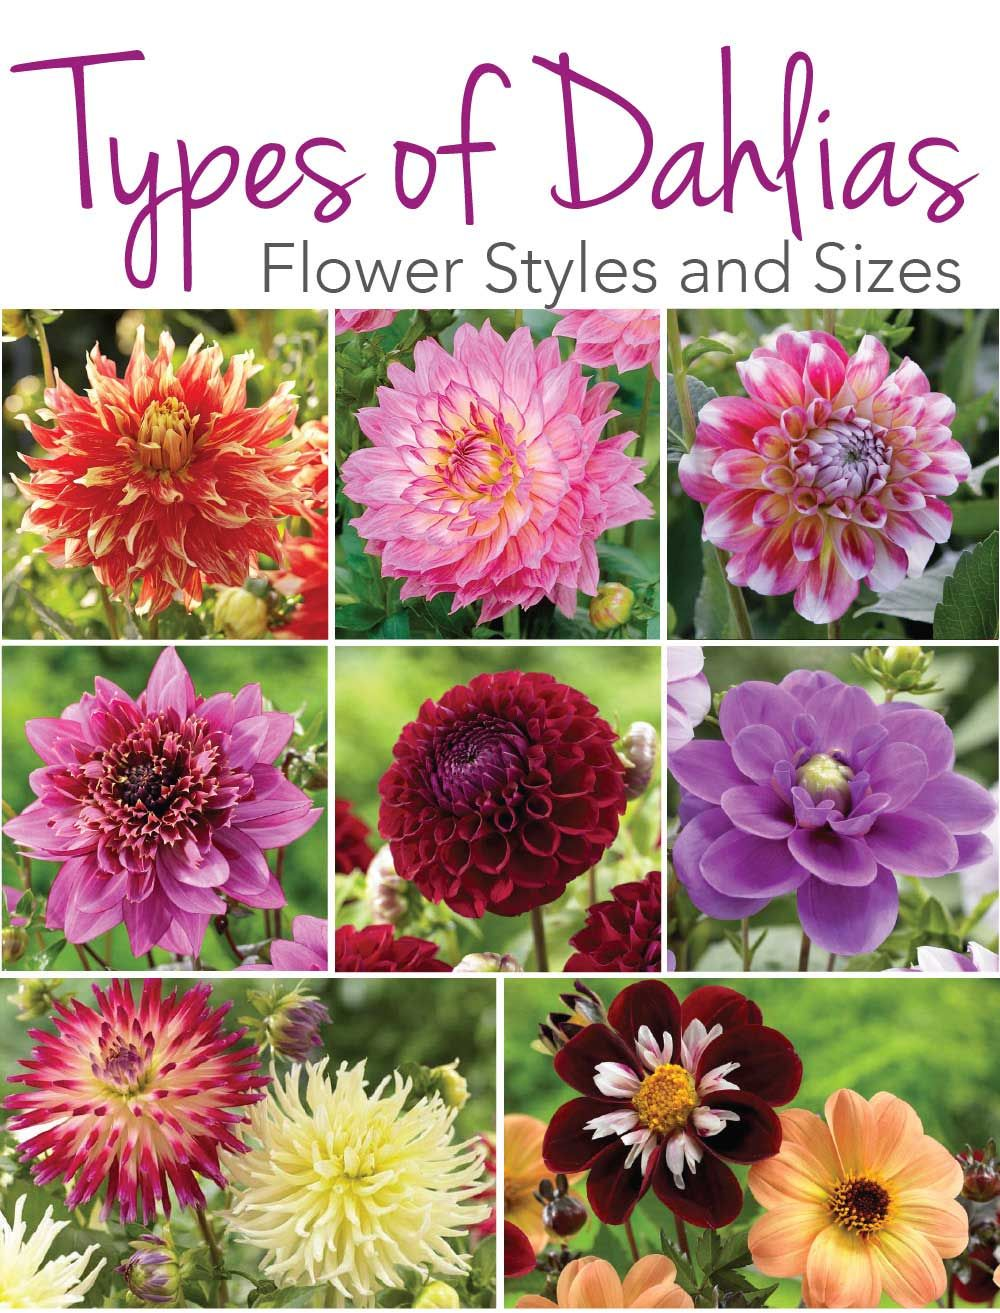 Know Your Dahlias Flower Styles And Sizes Longfield Gardens Flowers Longfield Gardens Dahlia Flower